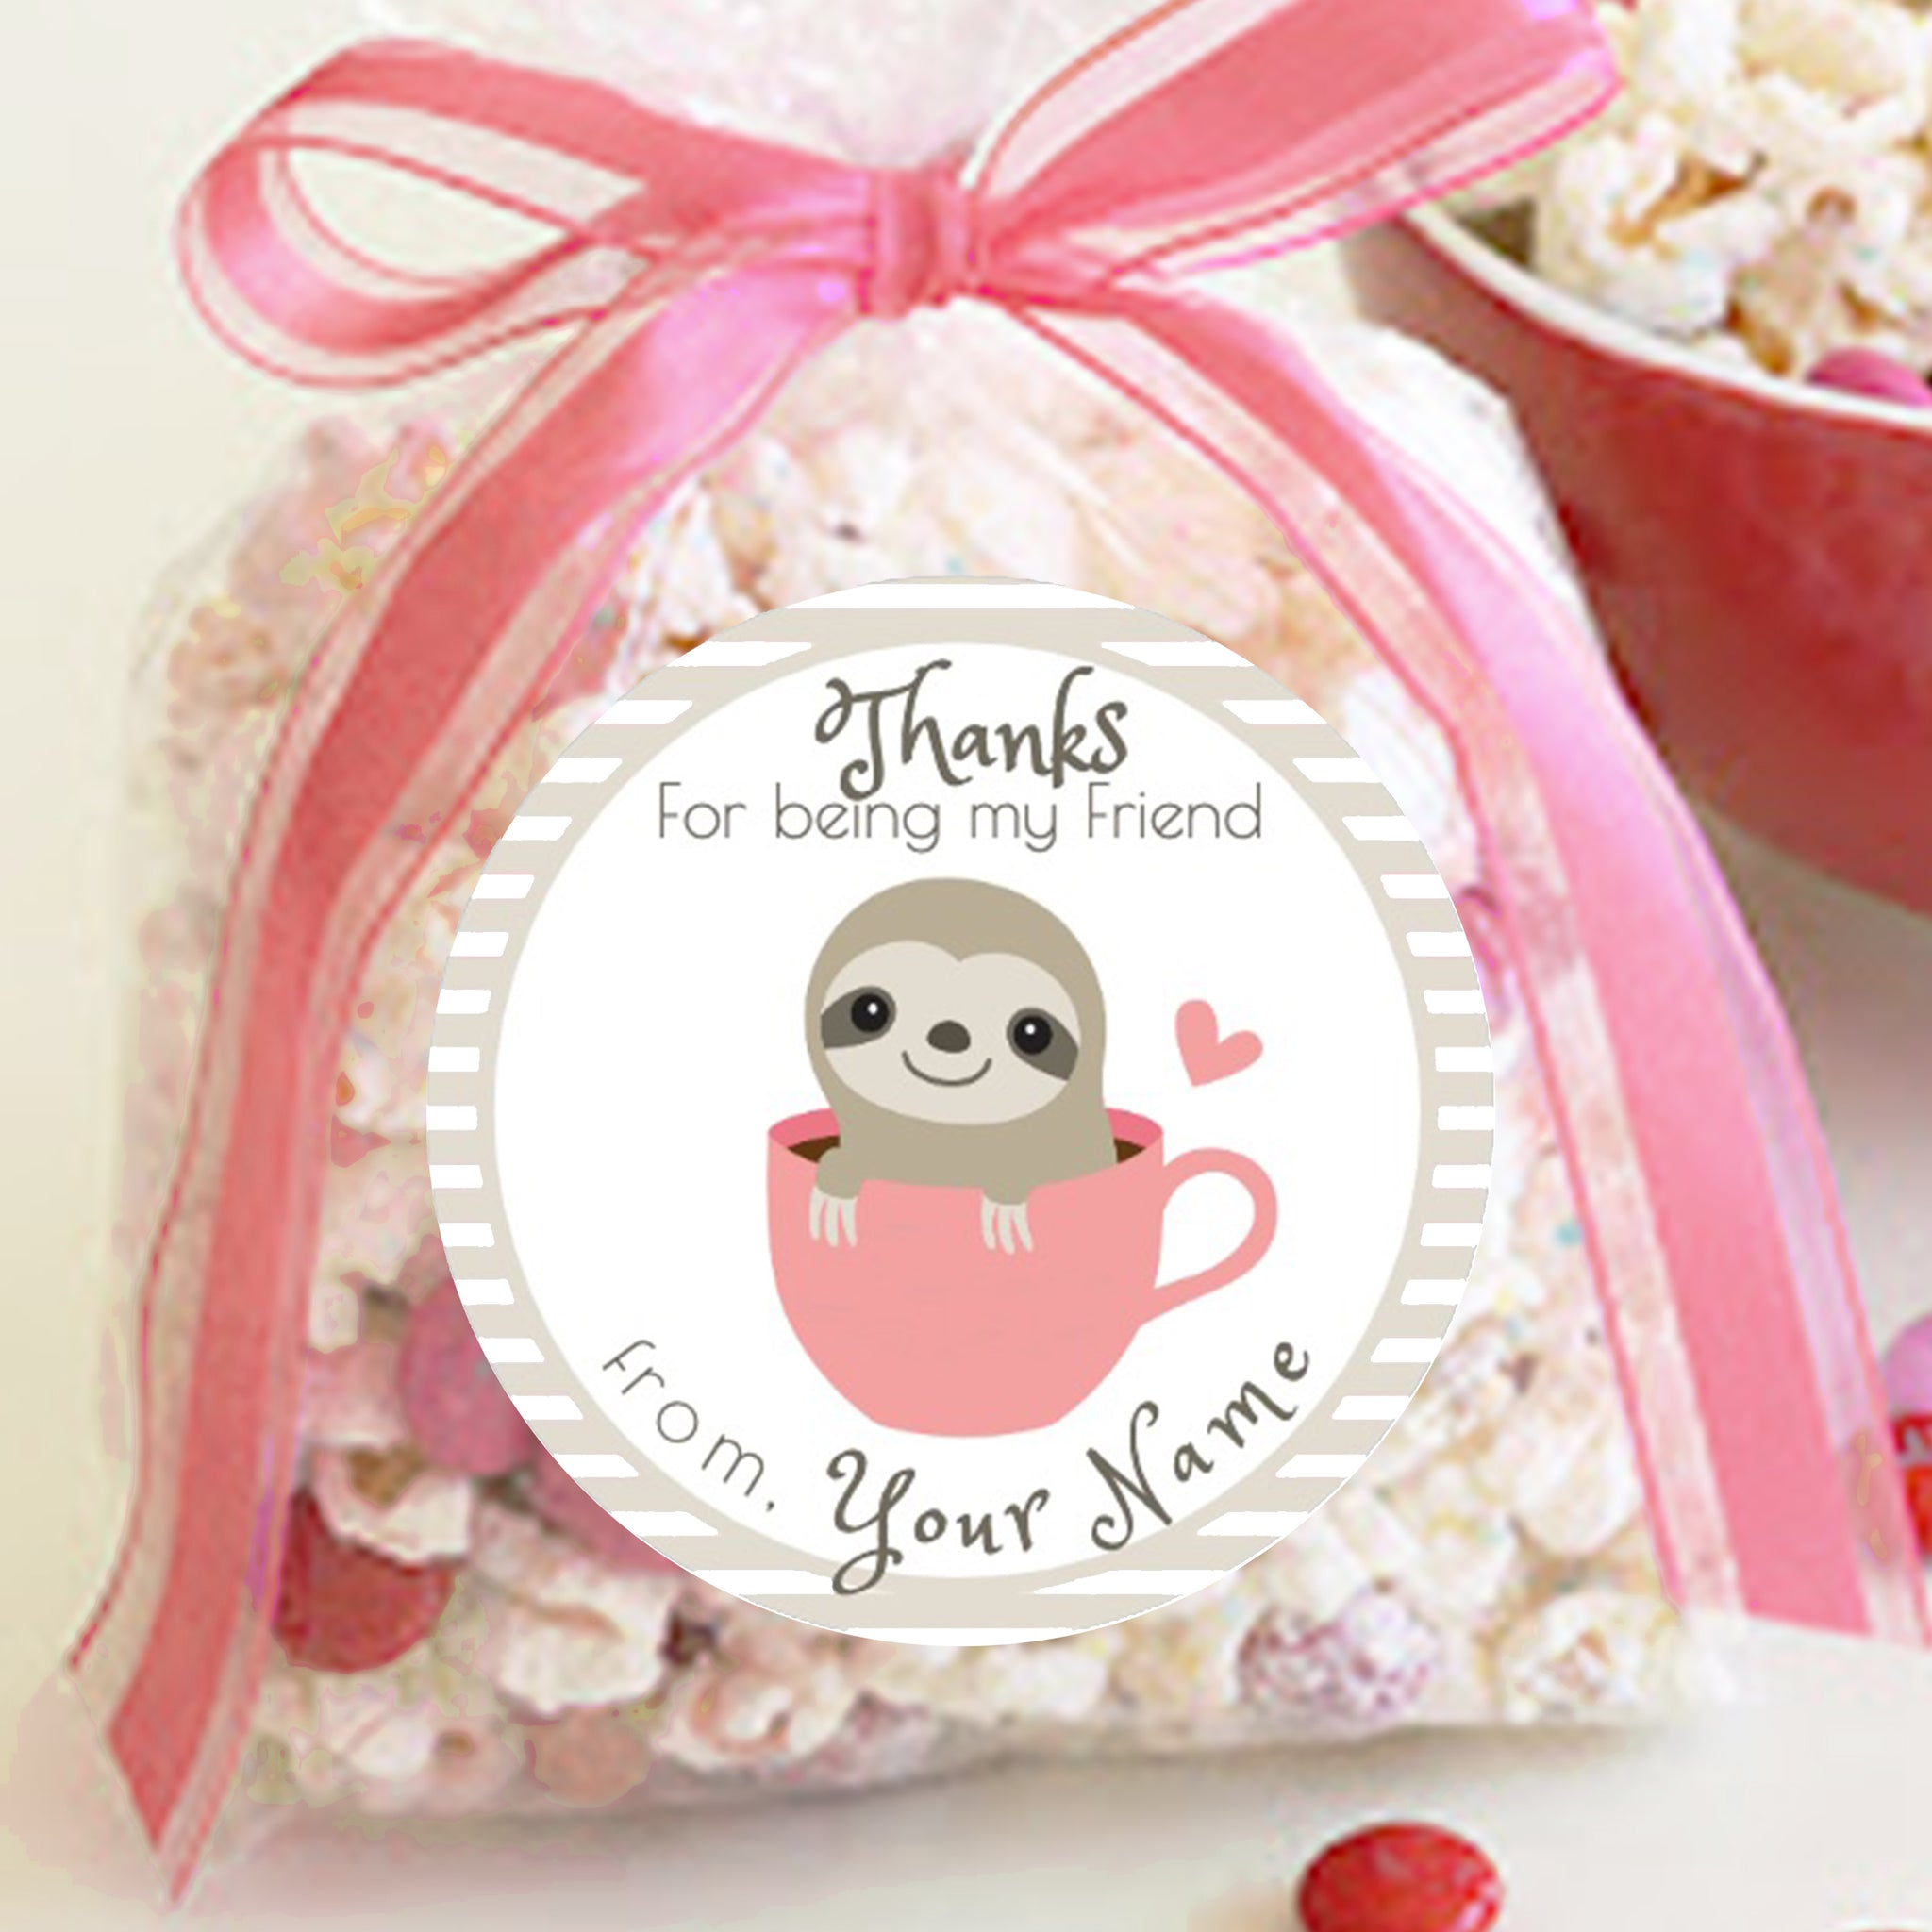 12 x Personalised Christmas Present Stickers Labels Gift Tag Sloth Candy Cane